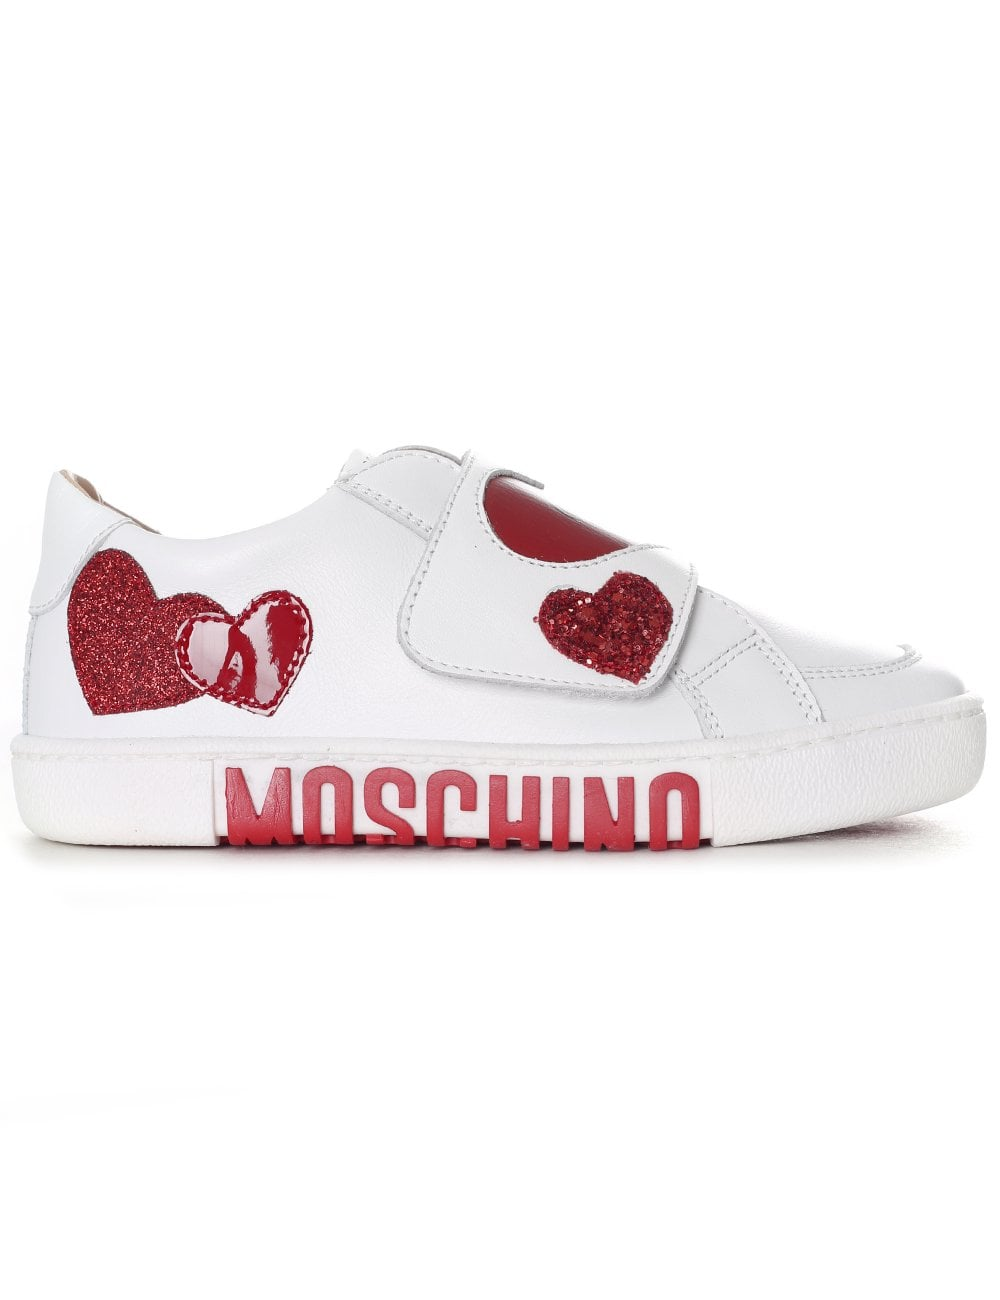 official shop the latest autumn shoes Moschino Girls Velcro Teddy Trainer